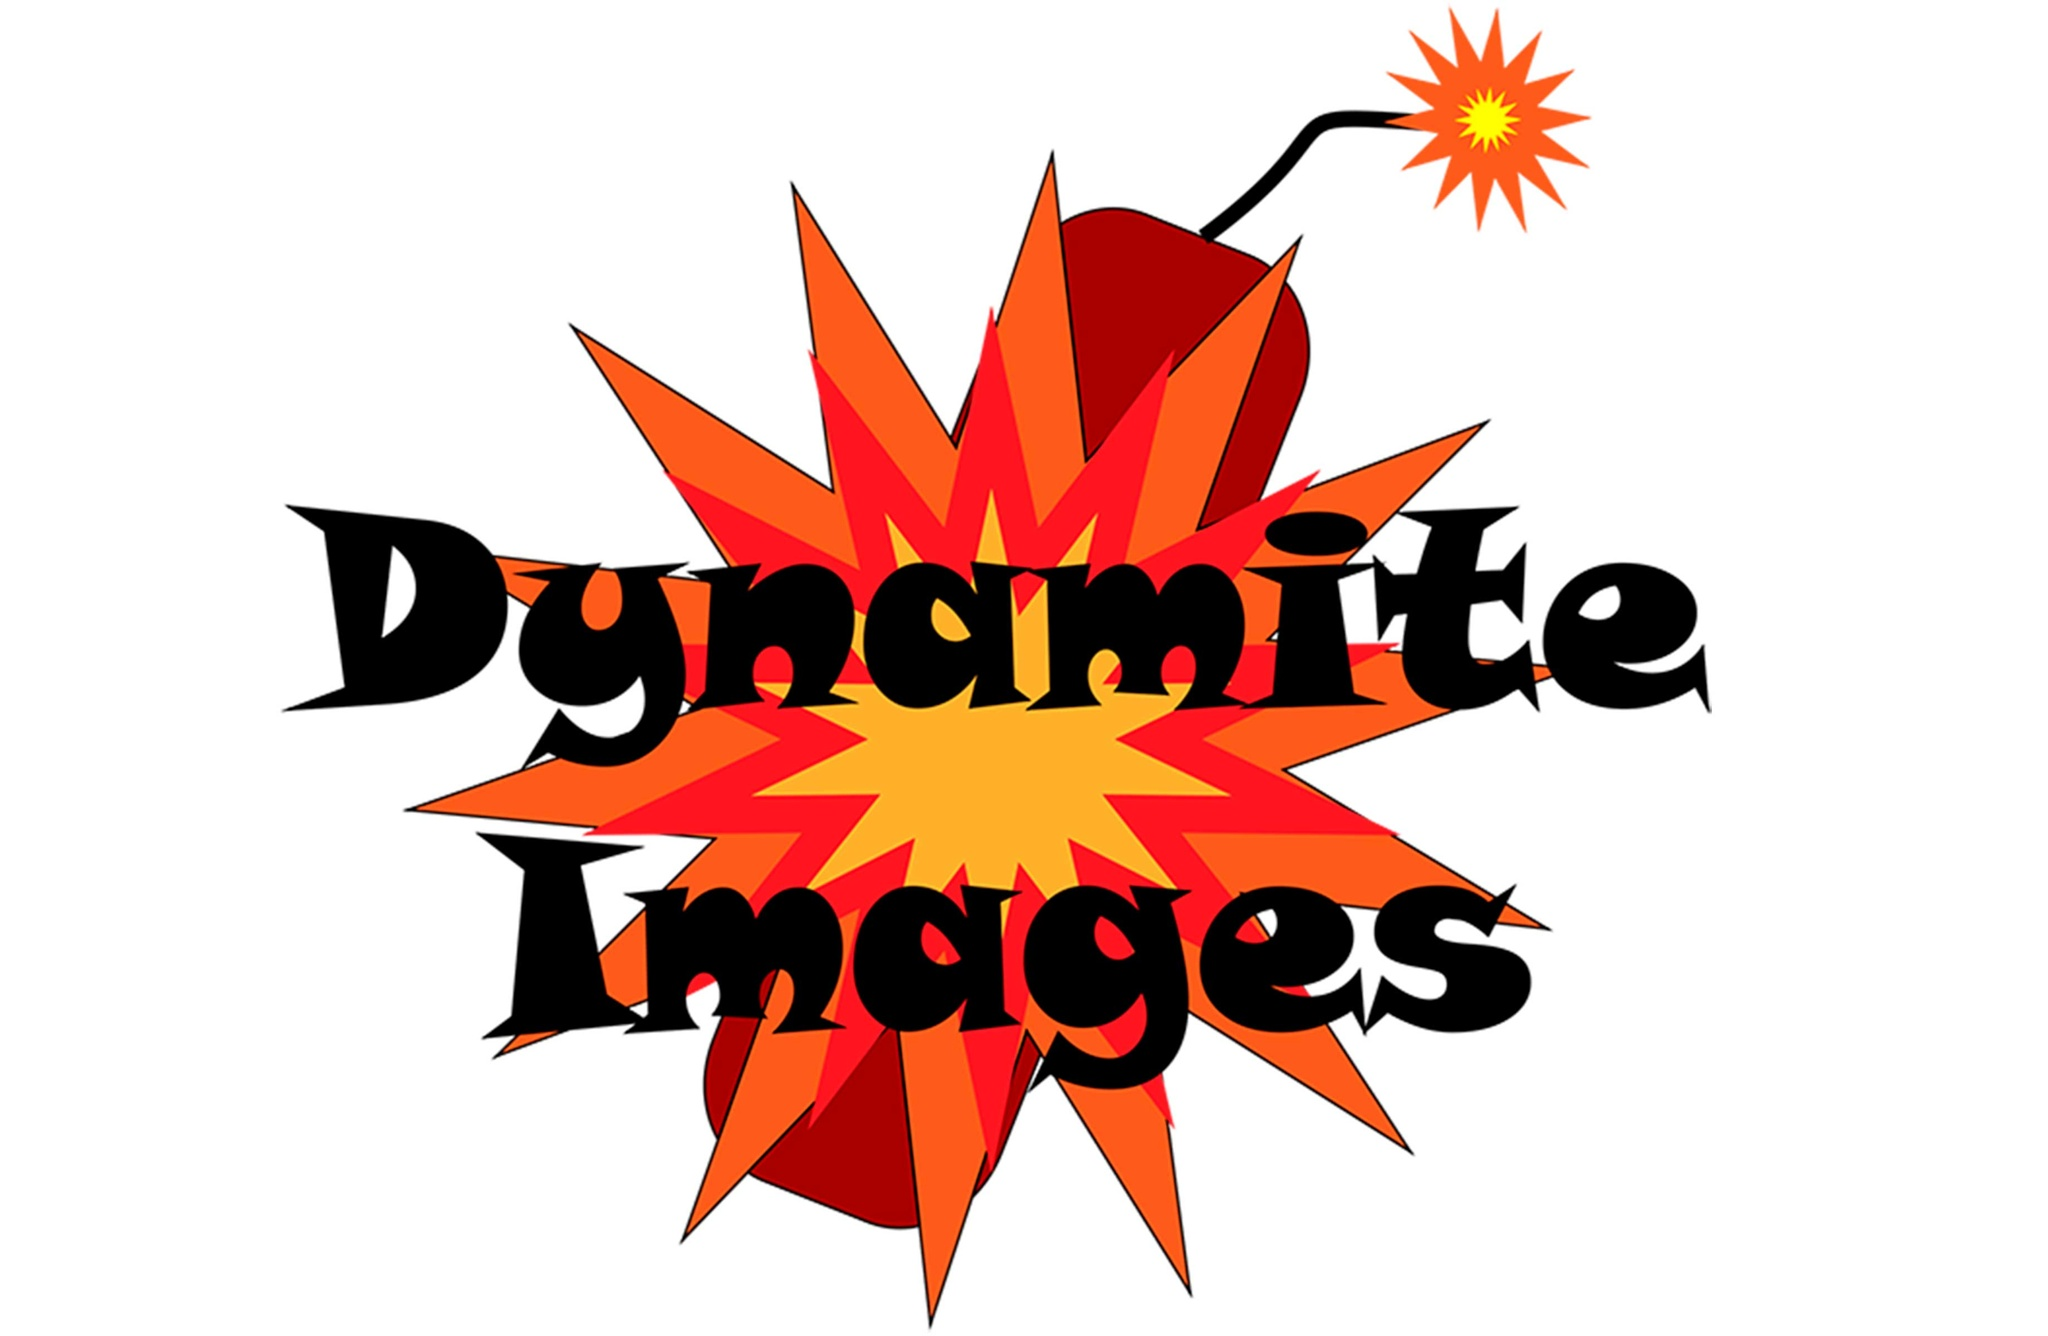 Dynamite Images by Marcus Adams